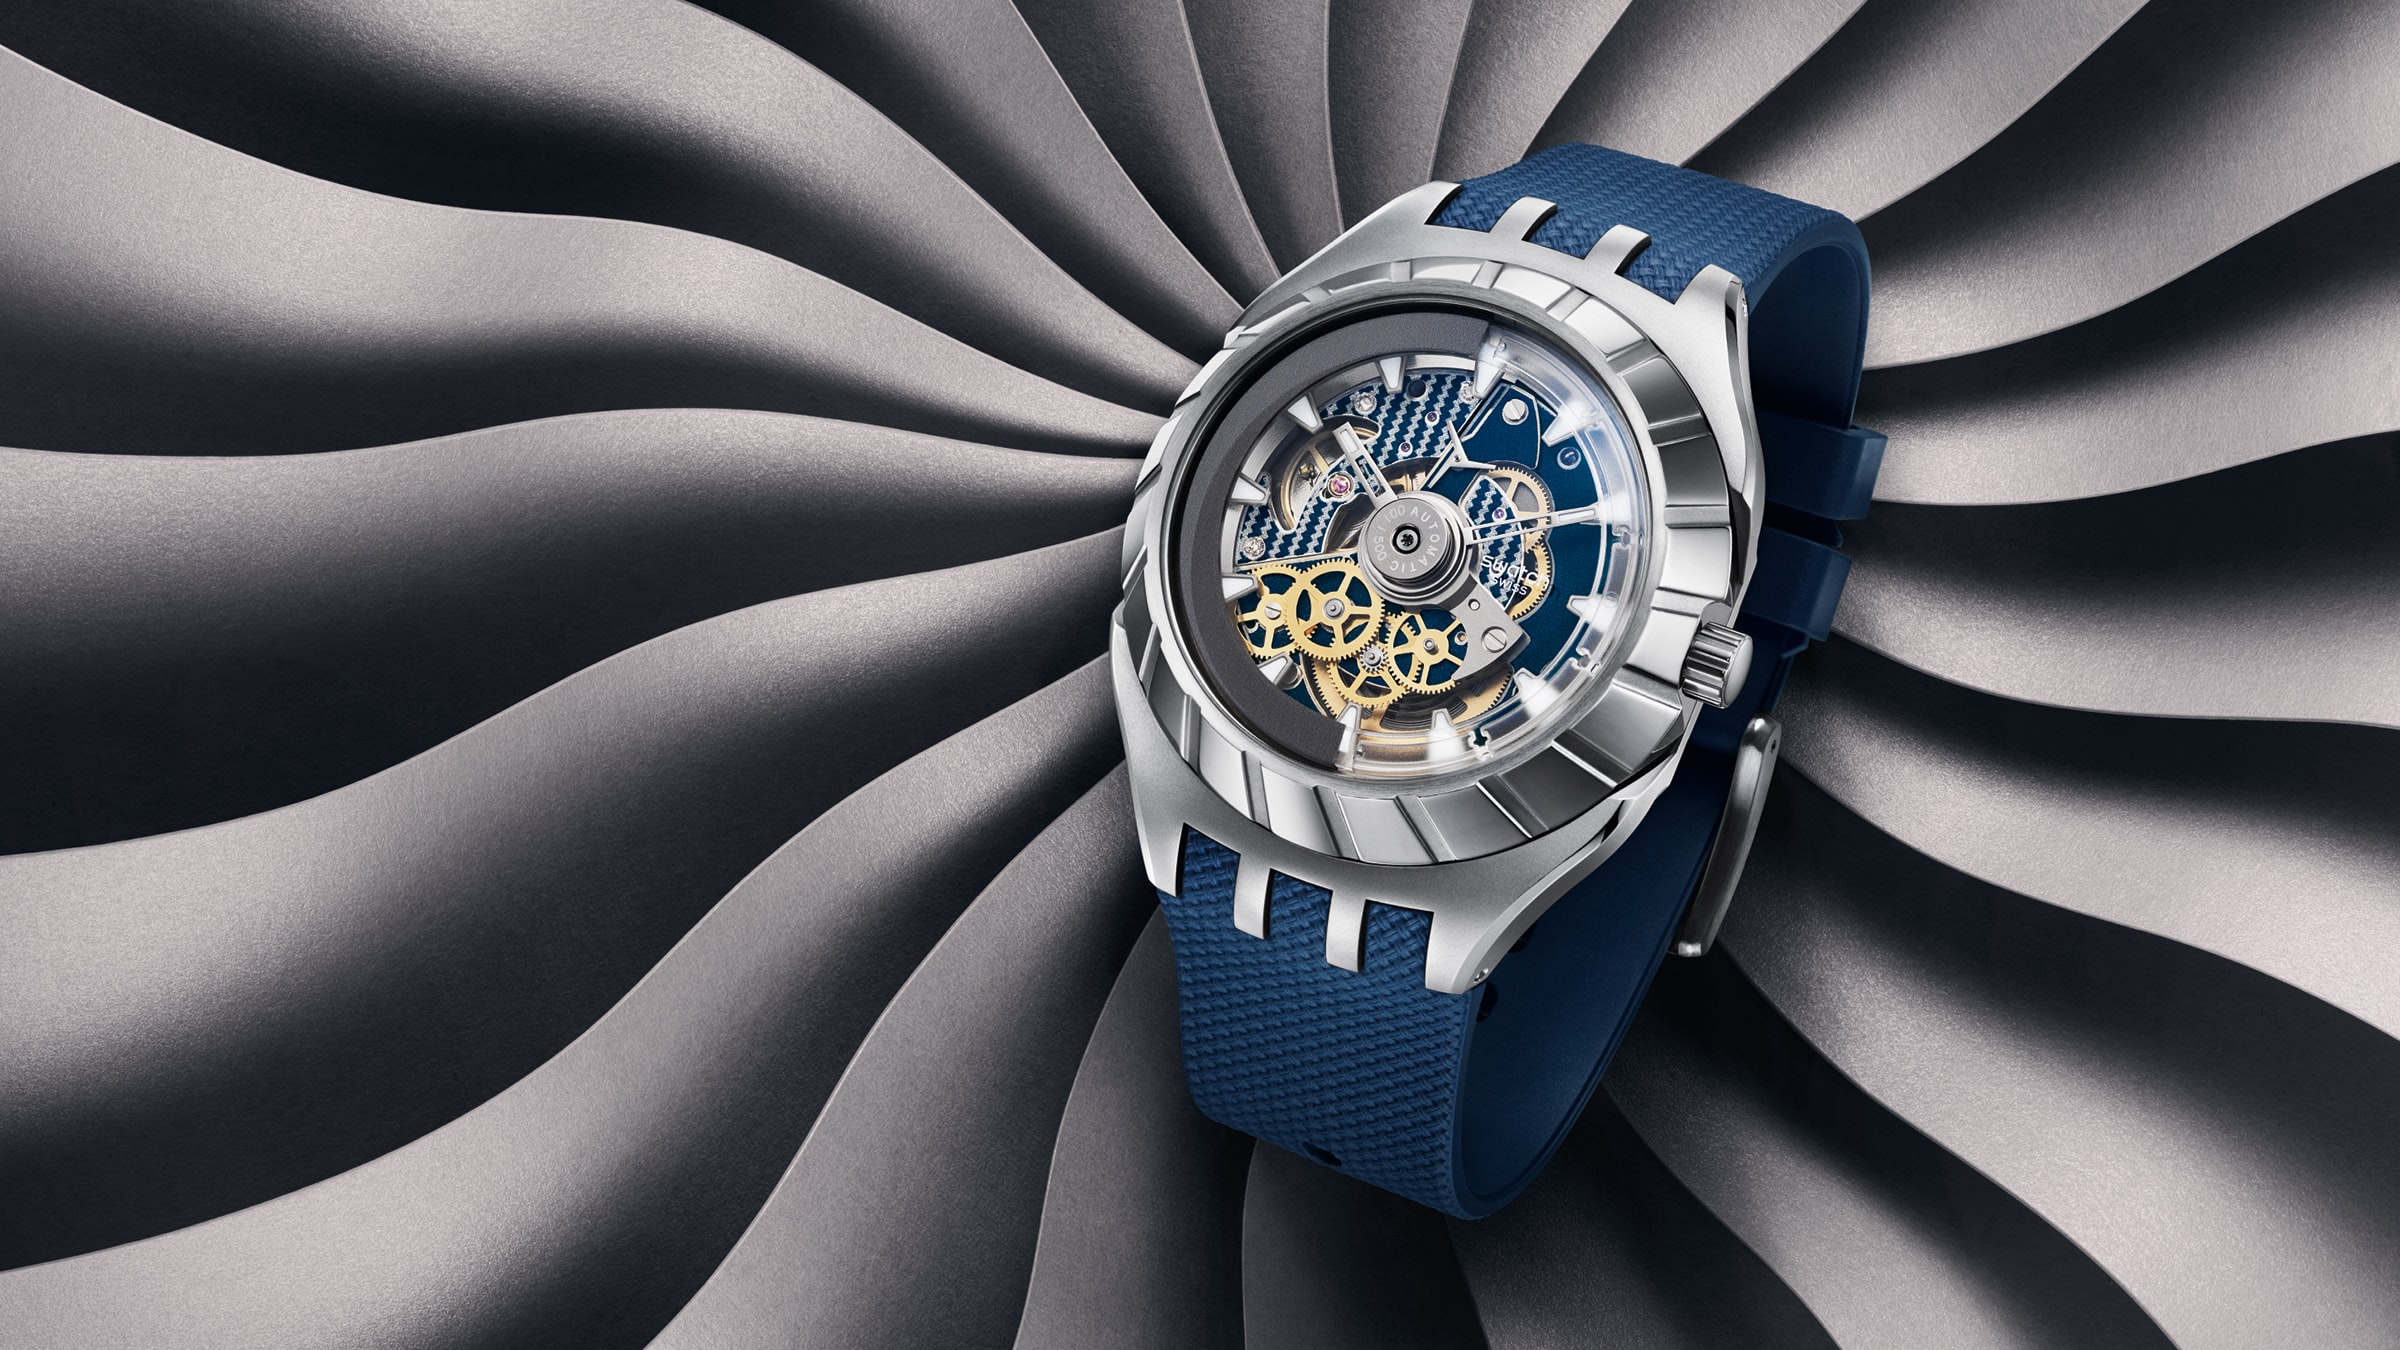 Introducing: The Swatch Flymagic